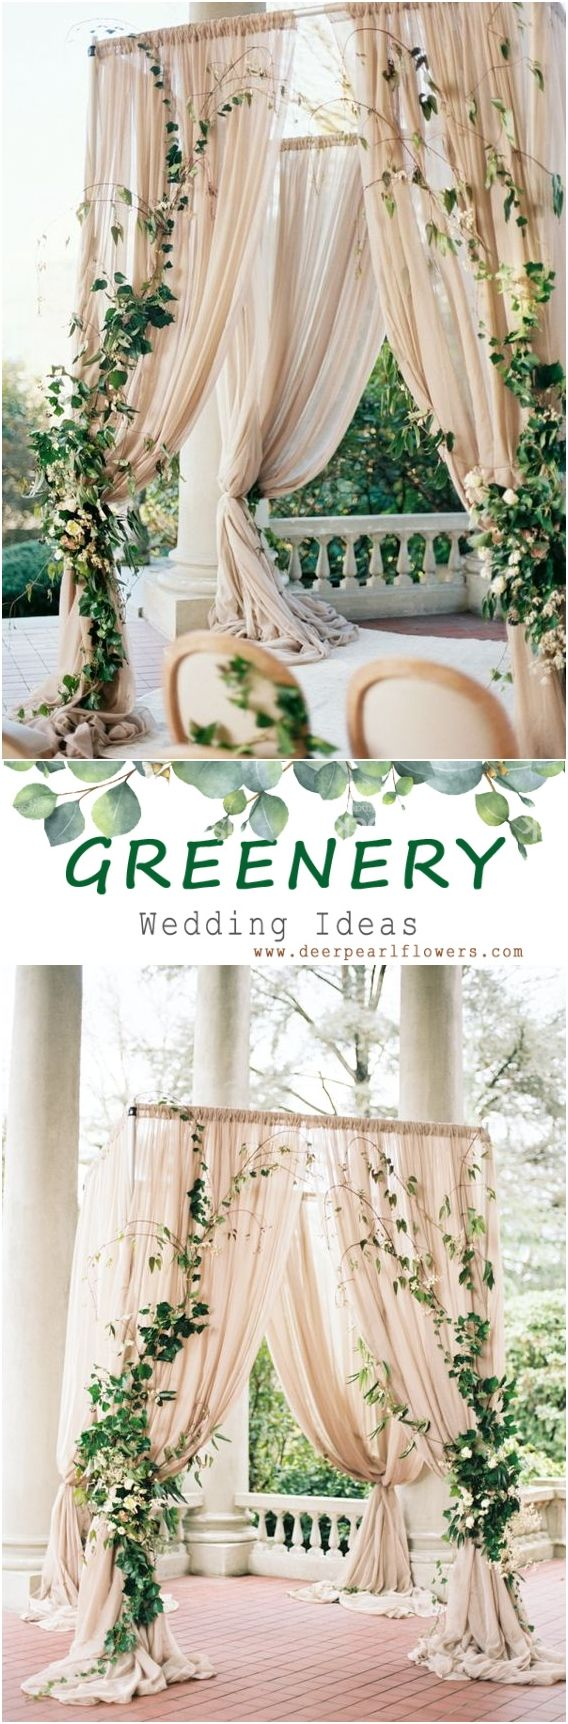 Wedding room decoration ideas 2018   Wedding Trends  Greenery Wedding Decor Ideas  Wedding